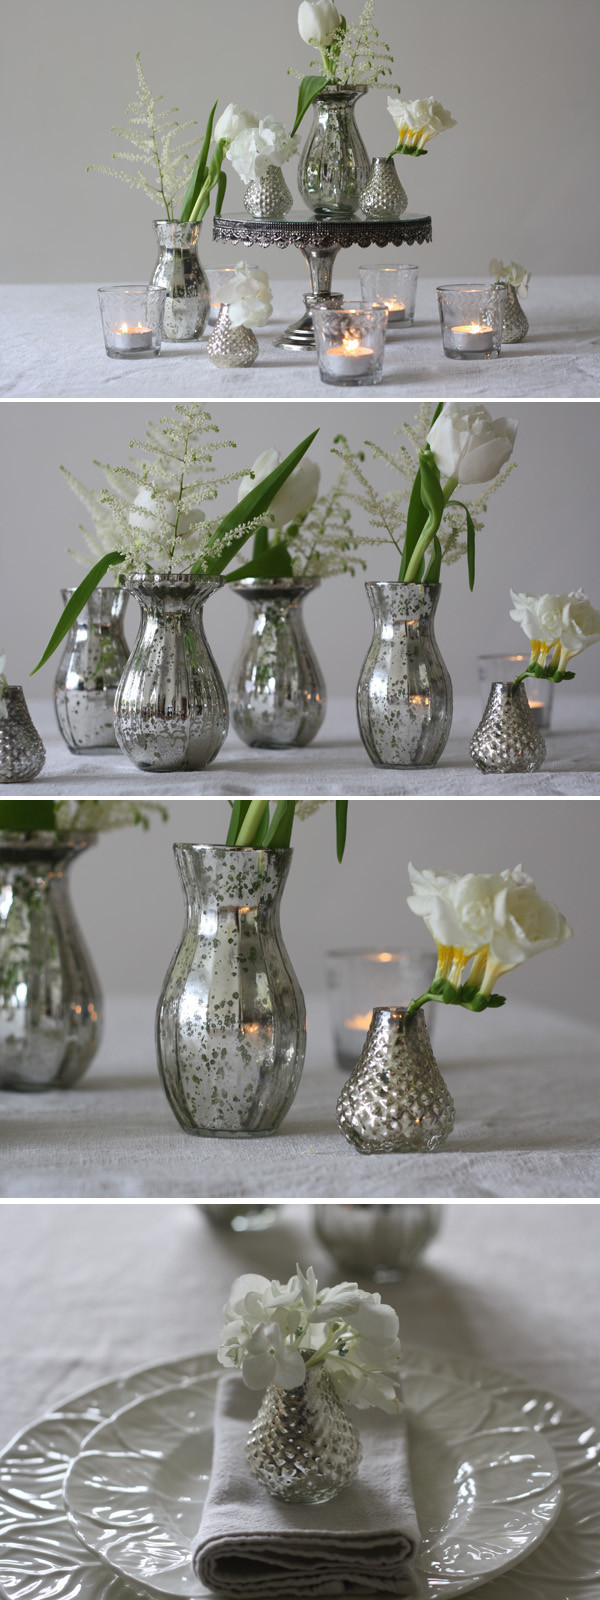 mercury glass floral vases of chair table vase decorations mirror small cylinder square glass within chair exquisite table vase decorations 29 mercury silver glass vases small bud for wedding centrepieces table